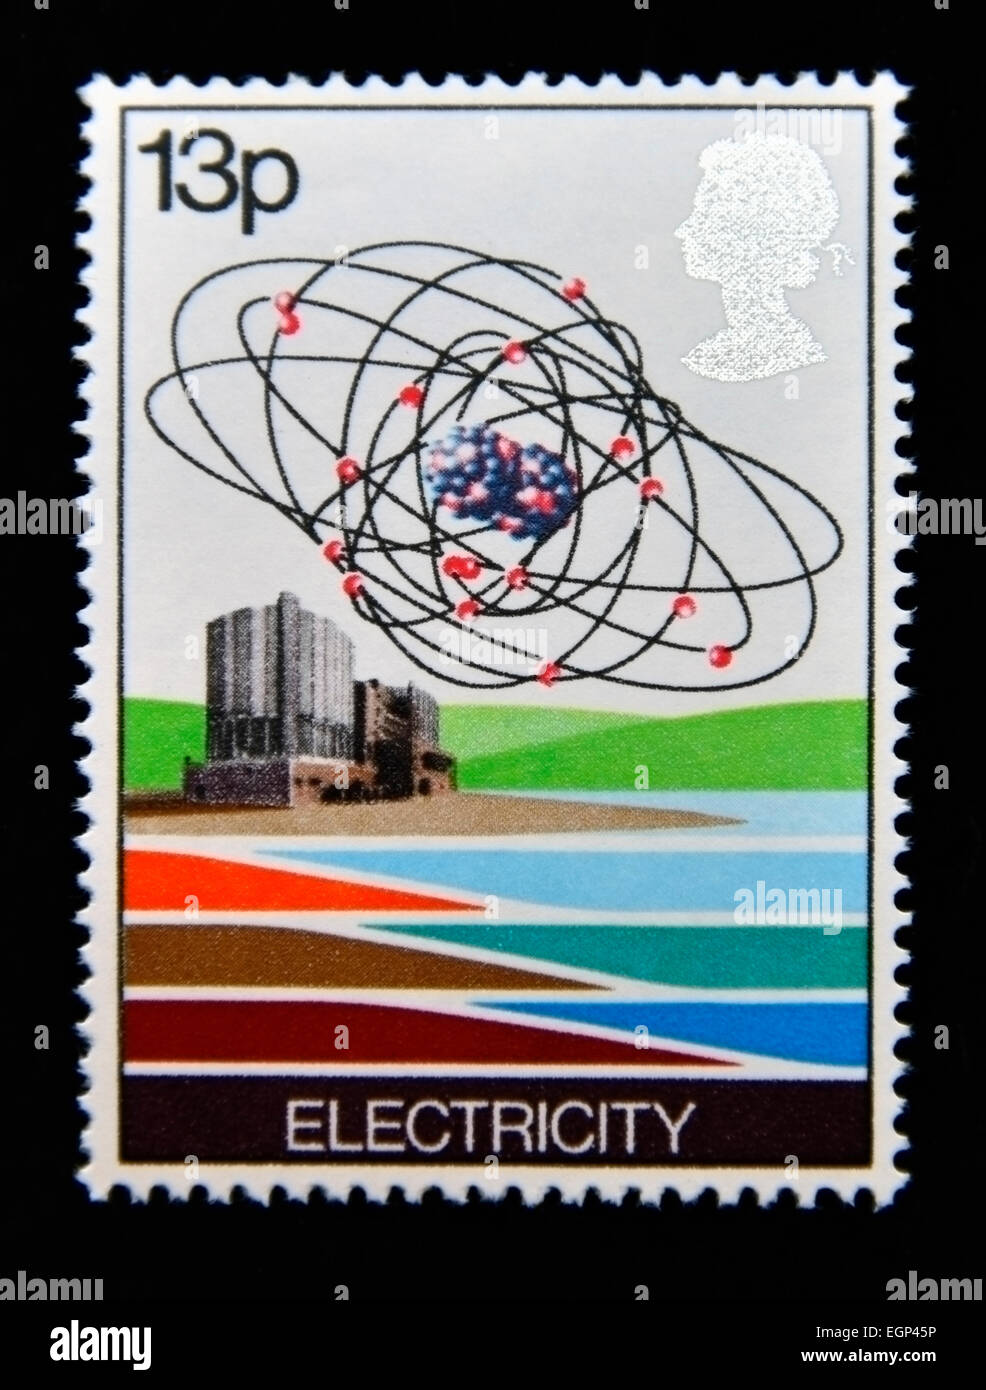 Postage stamp. Great Britain. Queen Elizabeth II. 1978. Energy Resources. Electricity - Nuclear Power Station and - Stock Image